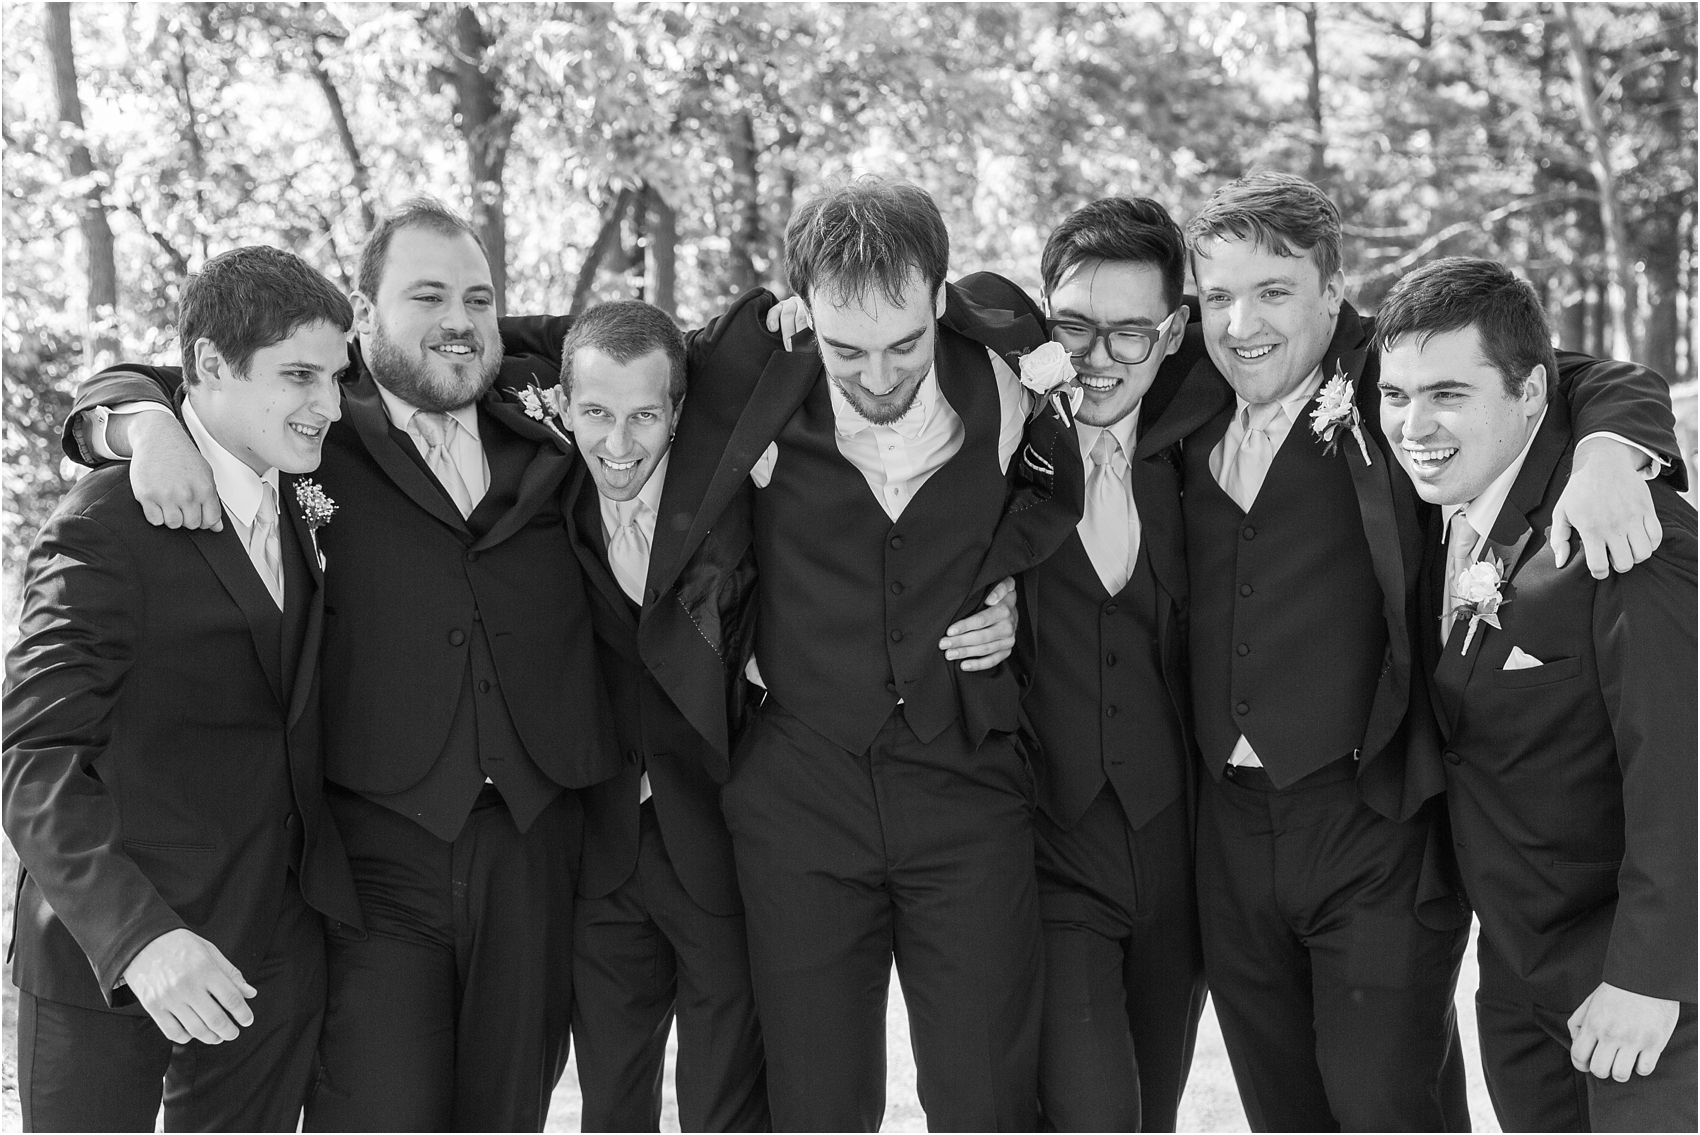 lord-of-the-rings-inspired-wedding-photos-at-crystal-gardens-in-howell-mi-by-courtney-carolyn-photography_0058.jpg